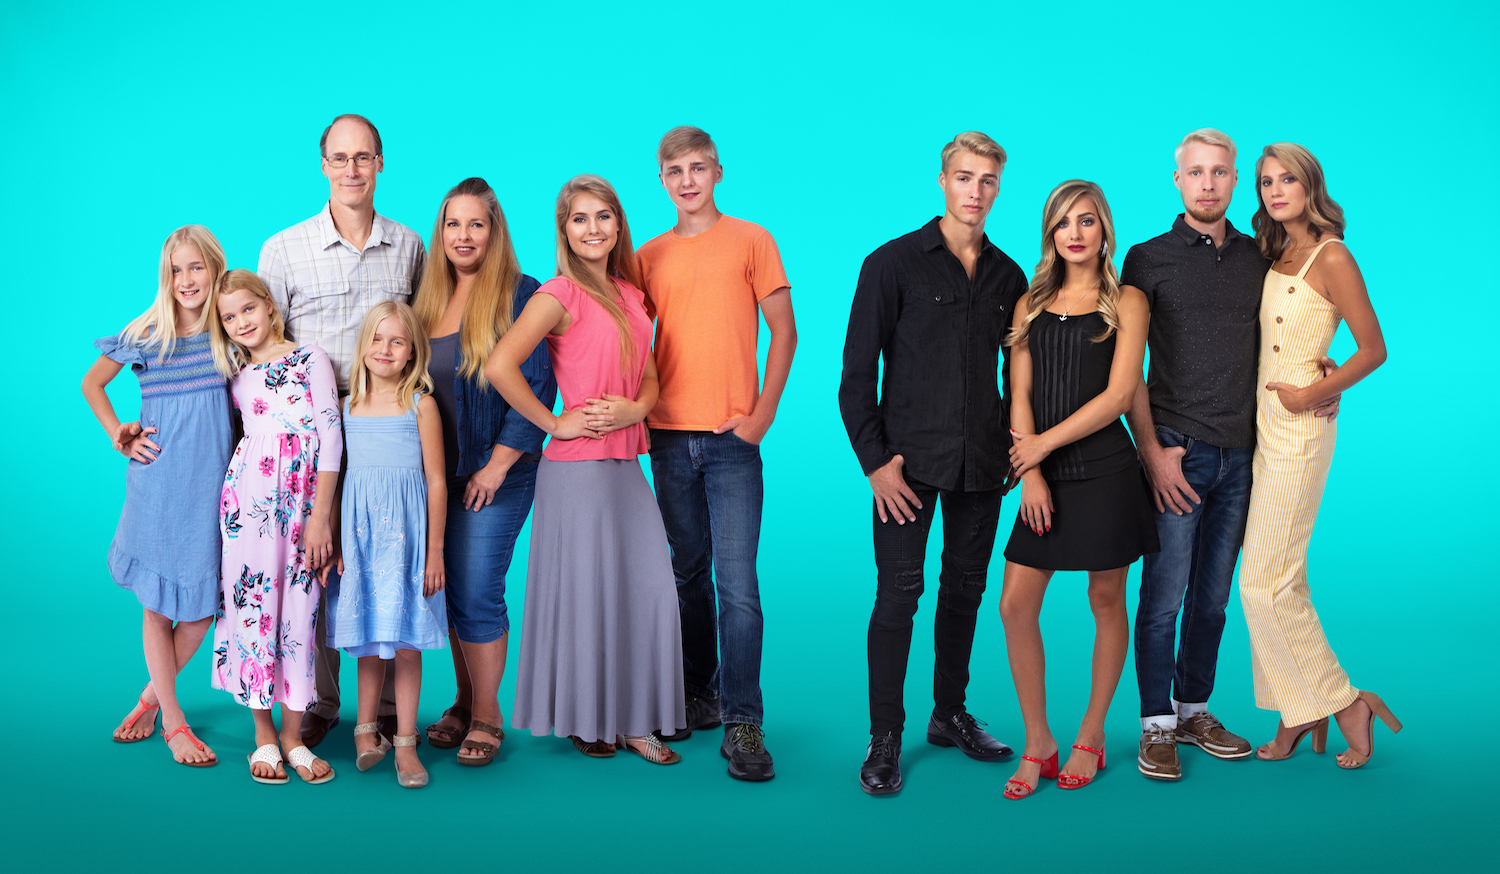 Group photo of the Plath family on a teal background.